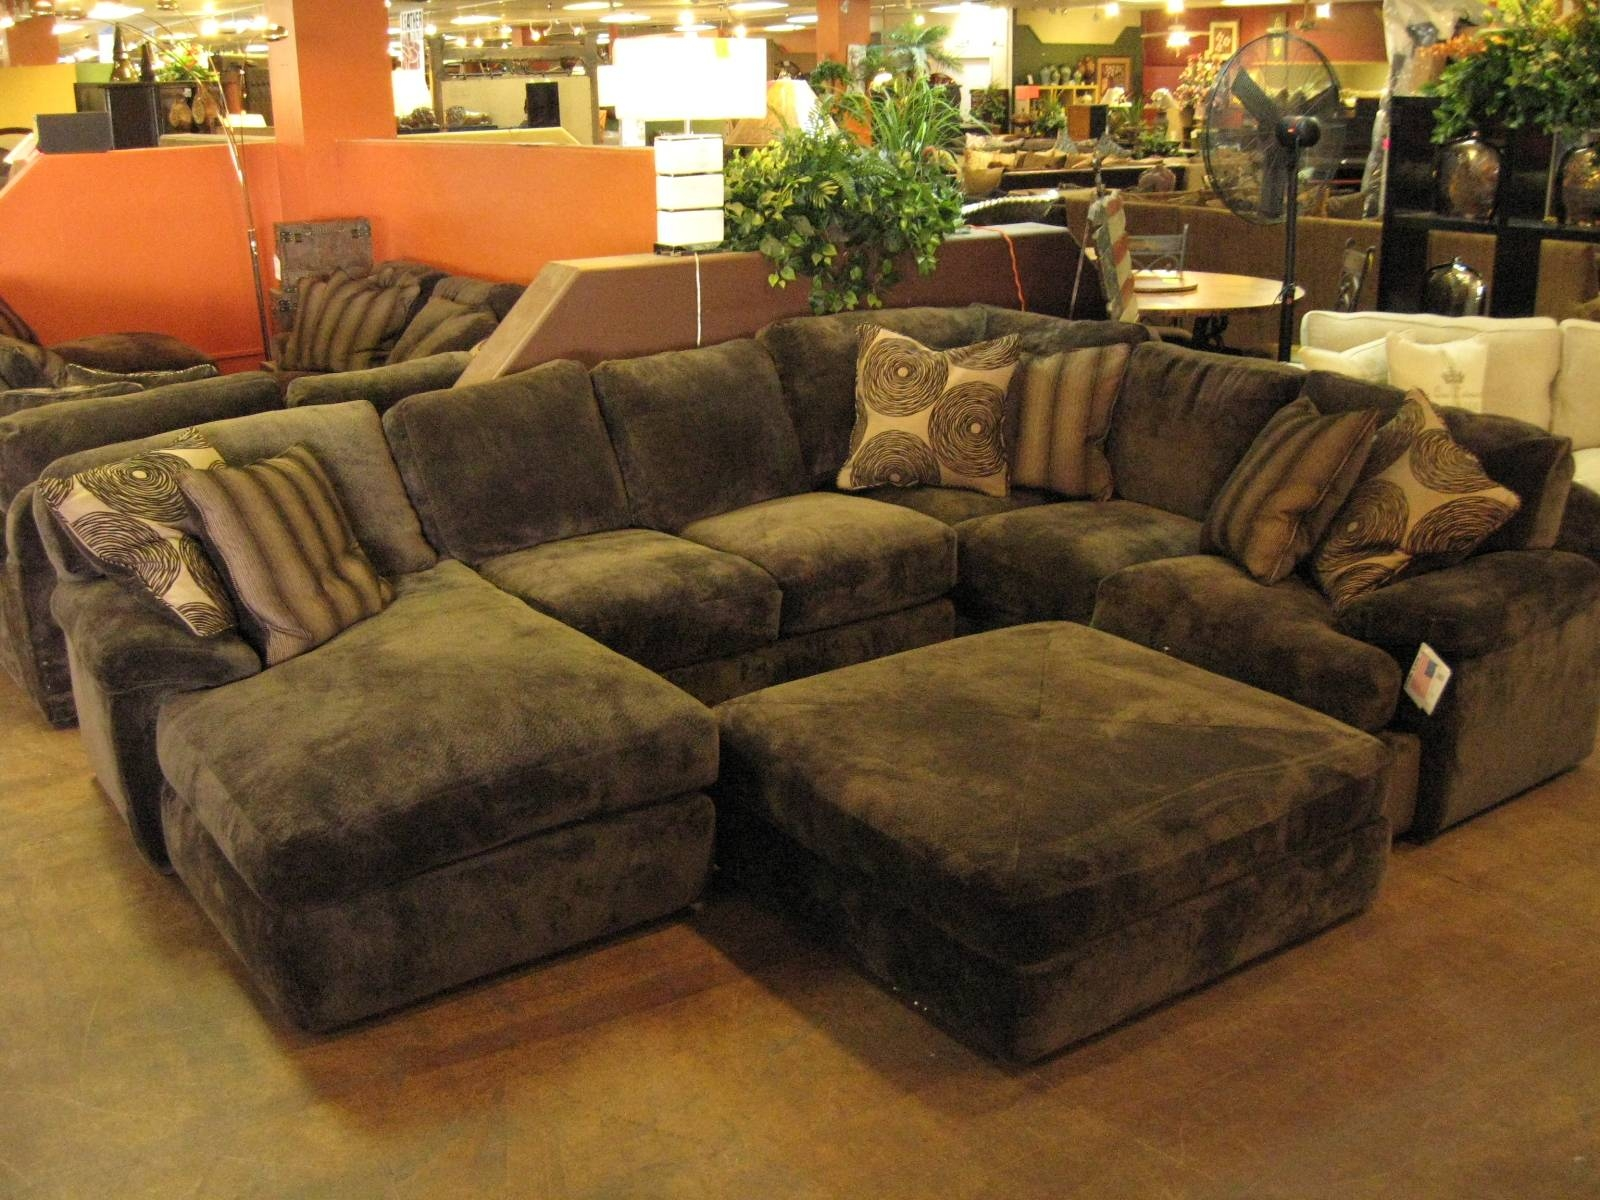 Large Sectional Sofas – Helpformycredit for Large Comfortable Sectional Sofas (Image 18 of 25)